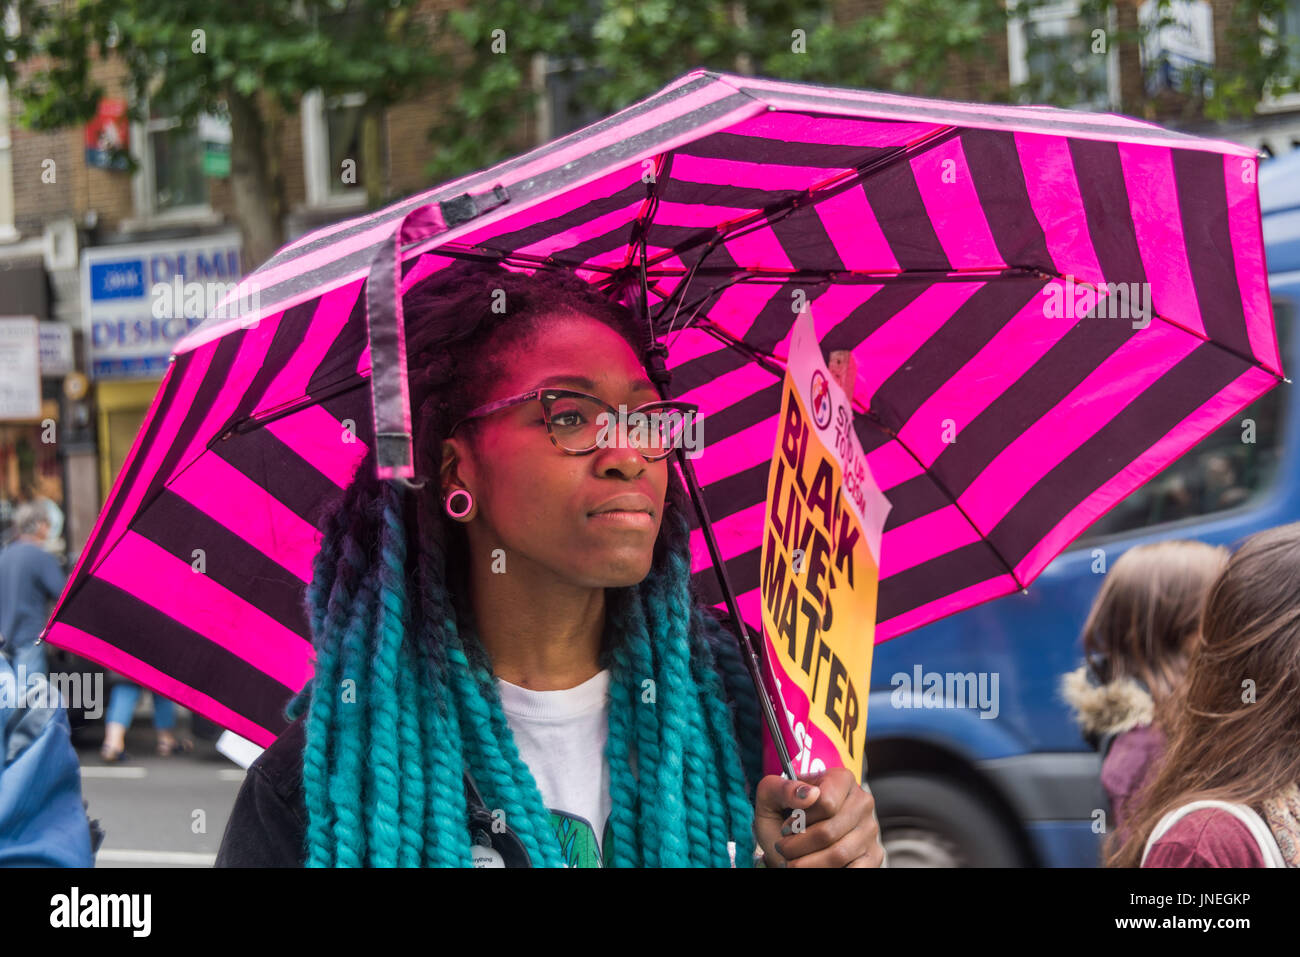 July 29, 2017 - London, UK - London, UK. 29th July 2017. A woman with a pink striped umbrella holds a Black Lives - Stock Image